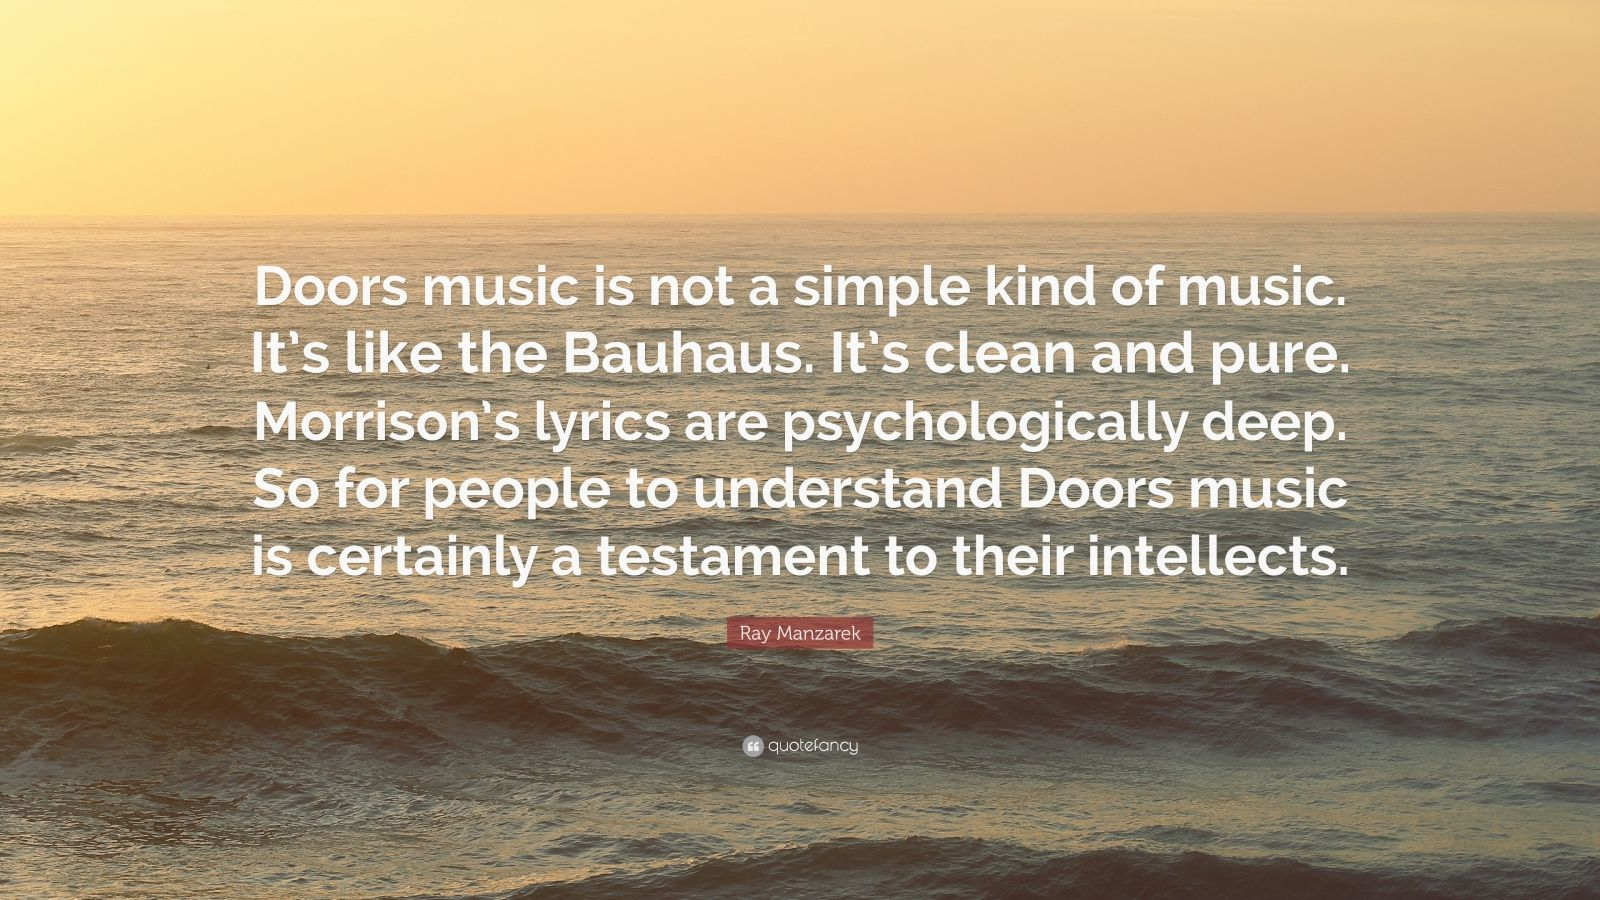 """Ray Manzarek Quote: """"Doors music is not a simple kind of music. It's like the Bauhaus. It's clean and pure. Morrison's lyrics are psychologically deep. So for people to understand Doors music is certainly a testament to their intellects."""""""